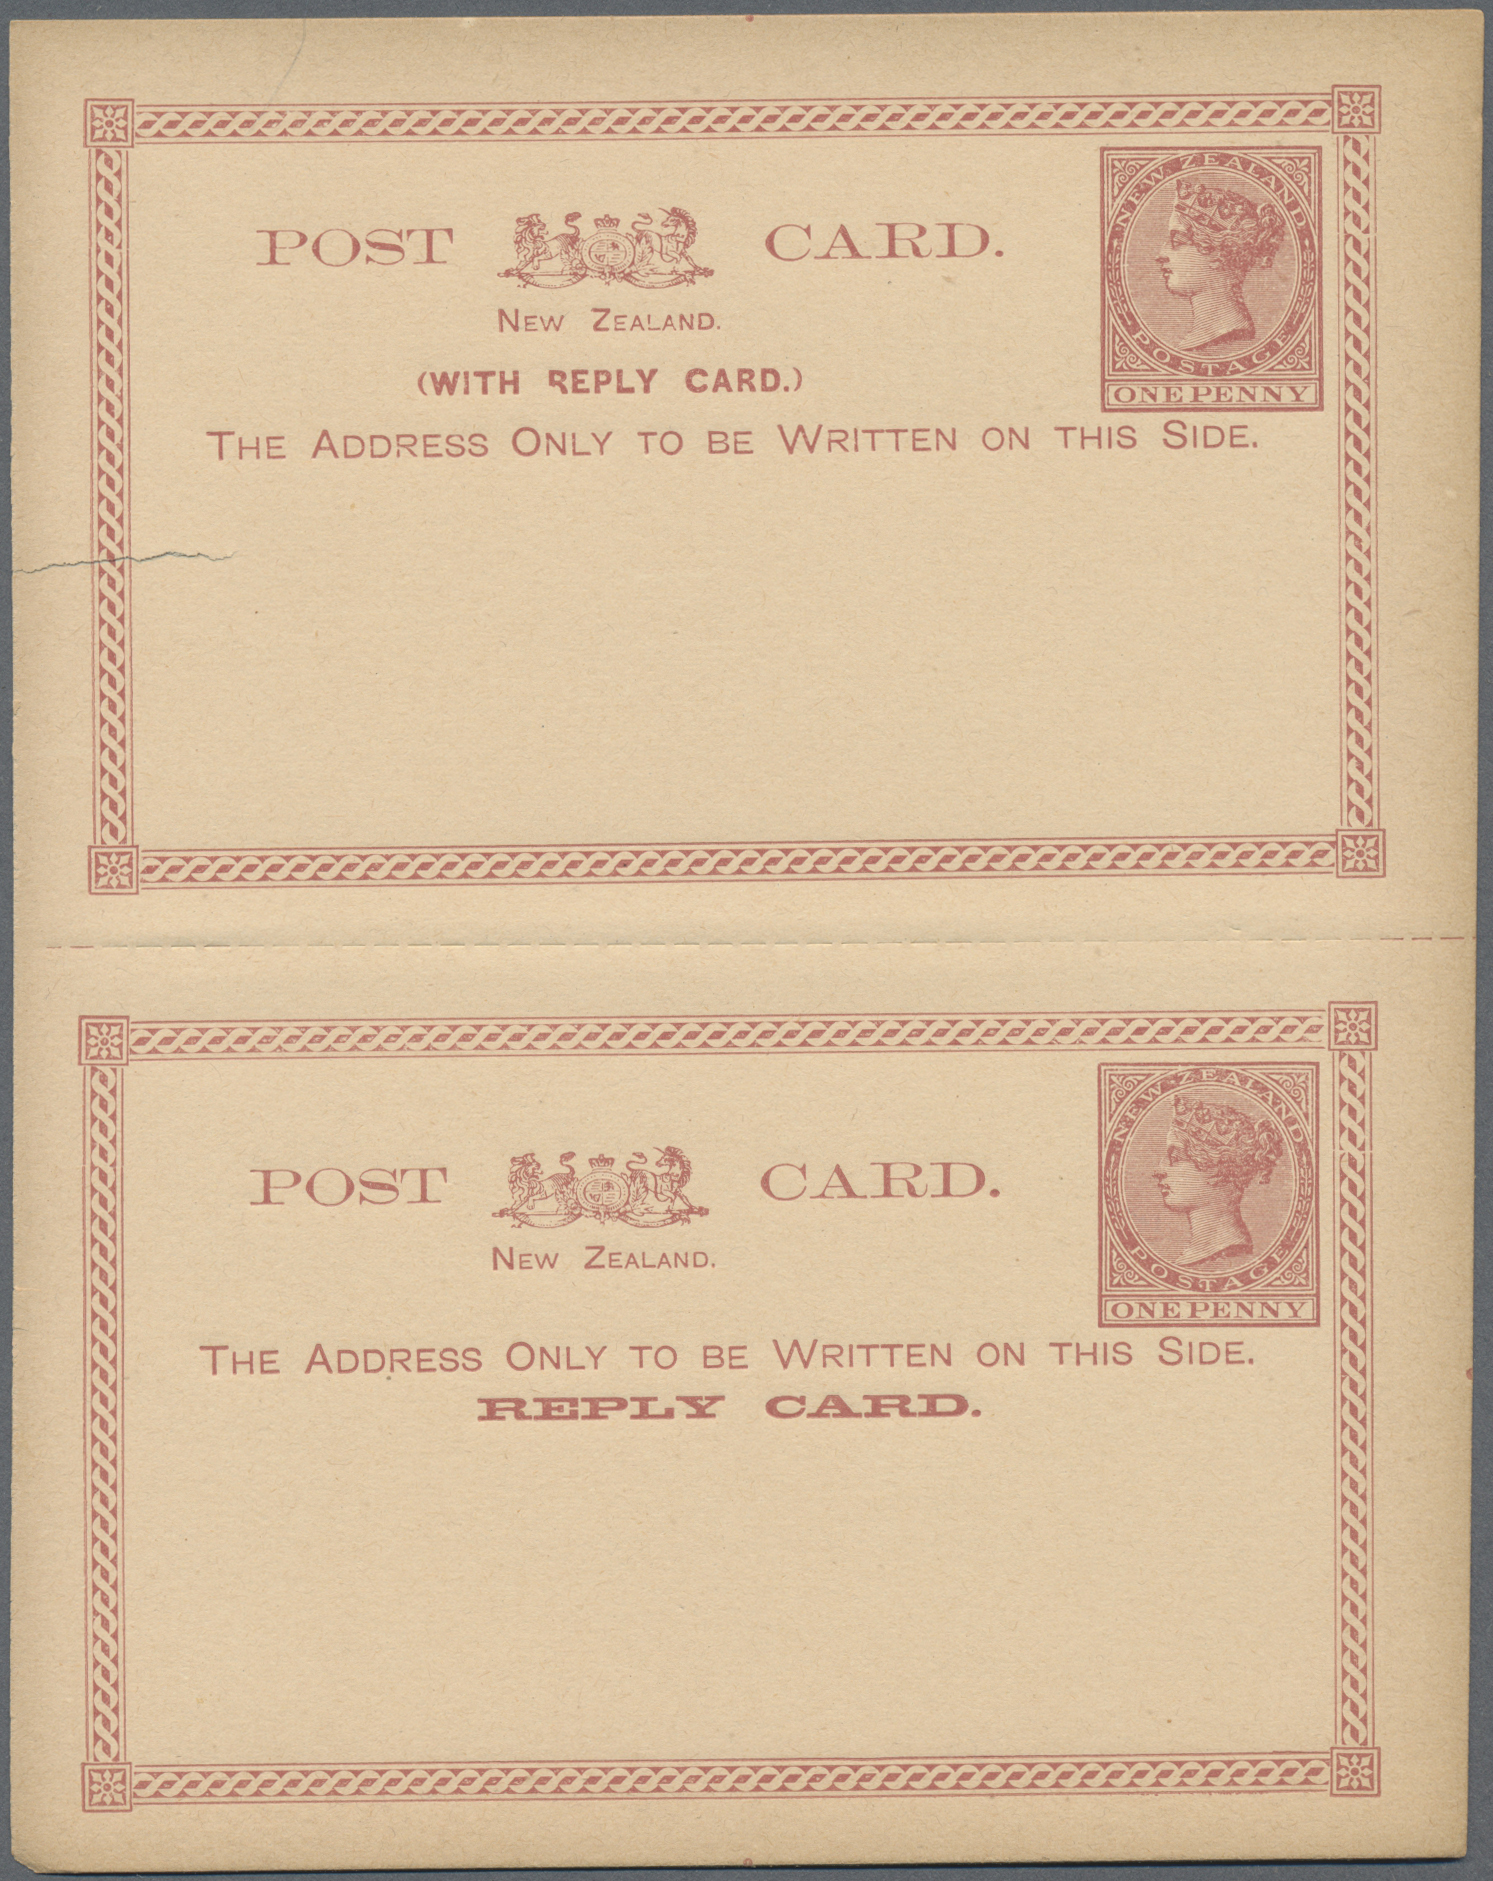 Lot 1362 - Australien + Ozeanien  -  Auktionshaus Christoph Gärtner GmbH & Co. KG Special Auction 26.- 28. May 2020 Day 1 Collections Part 1